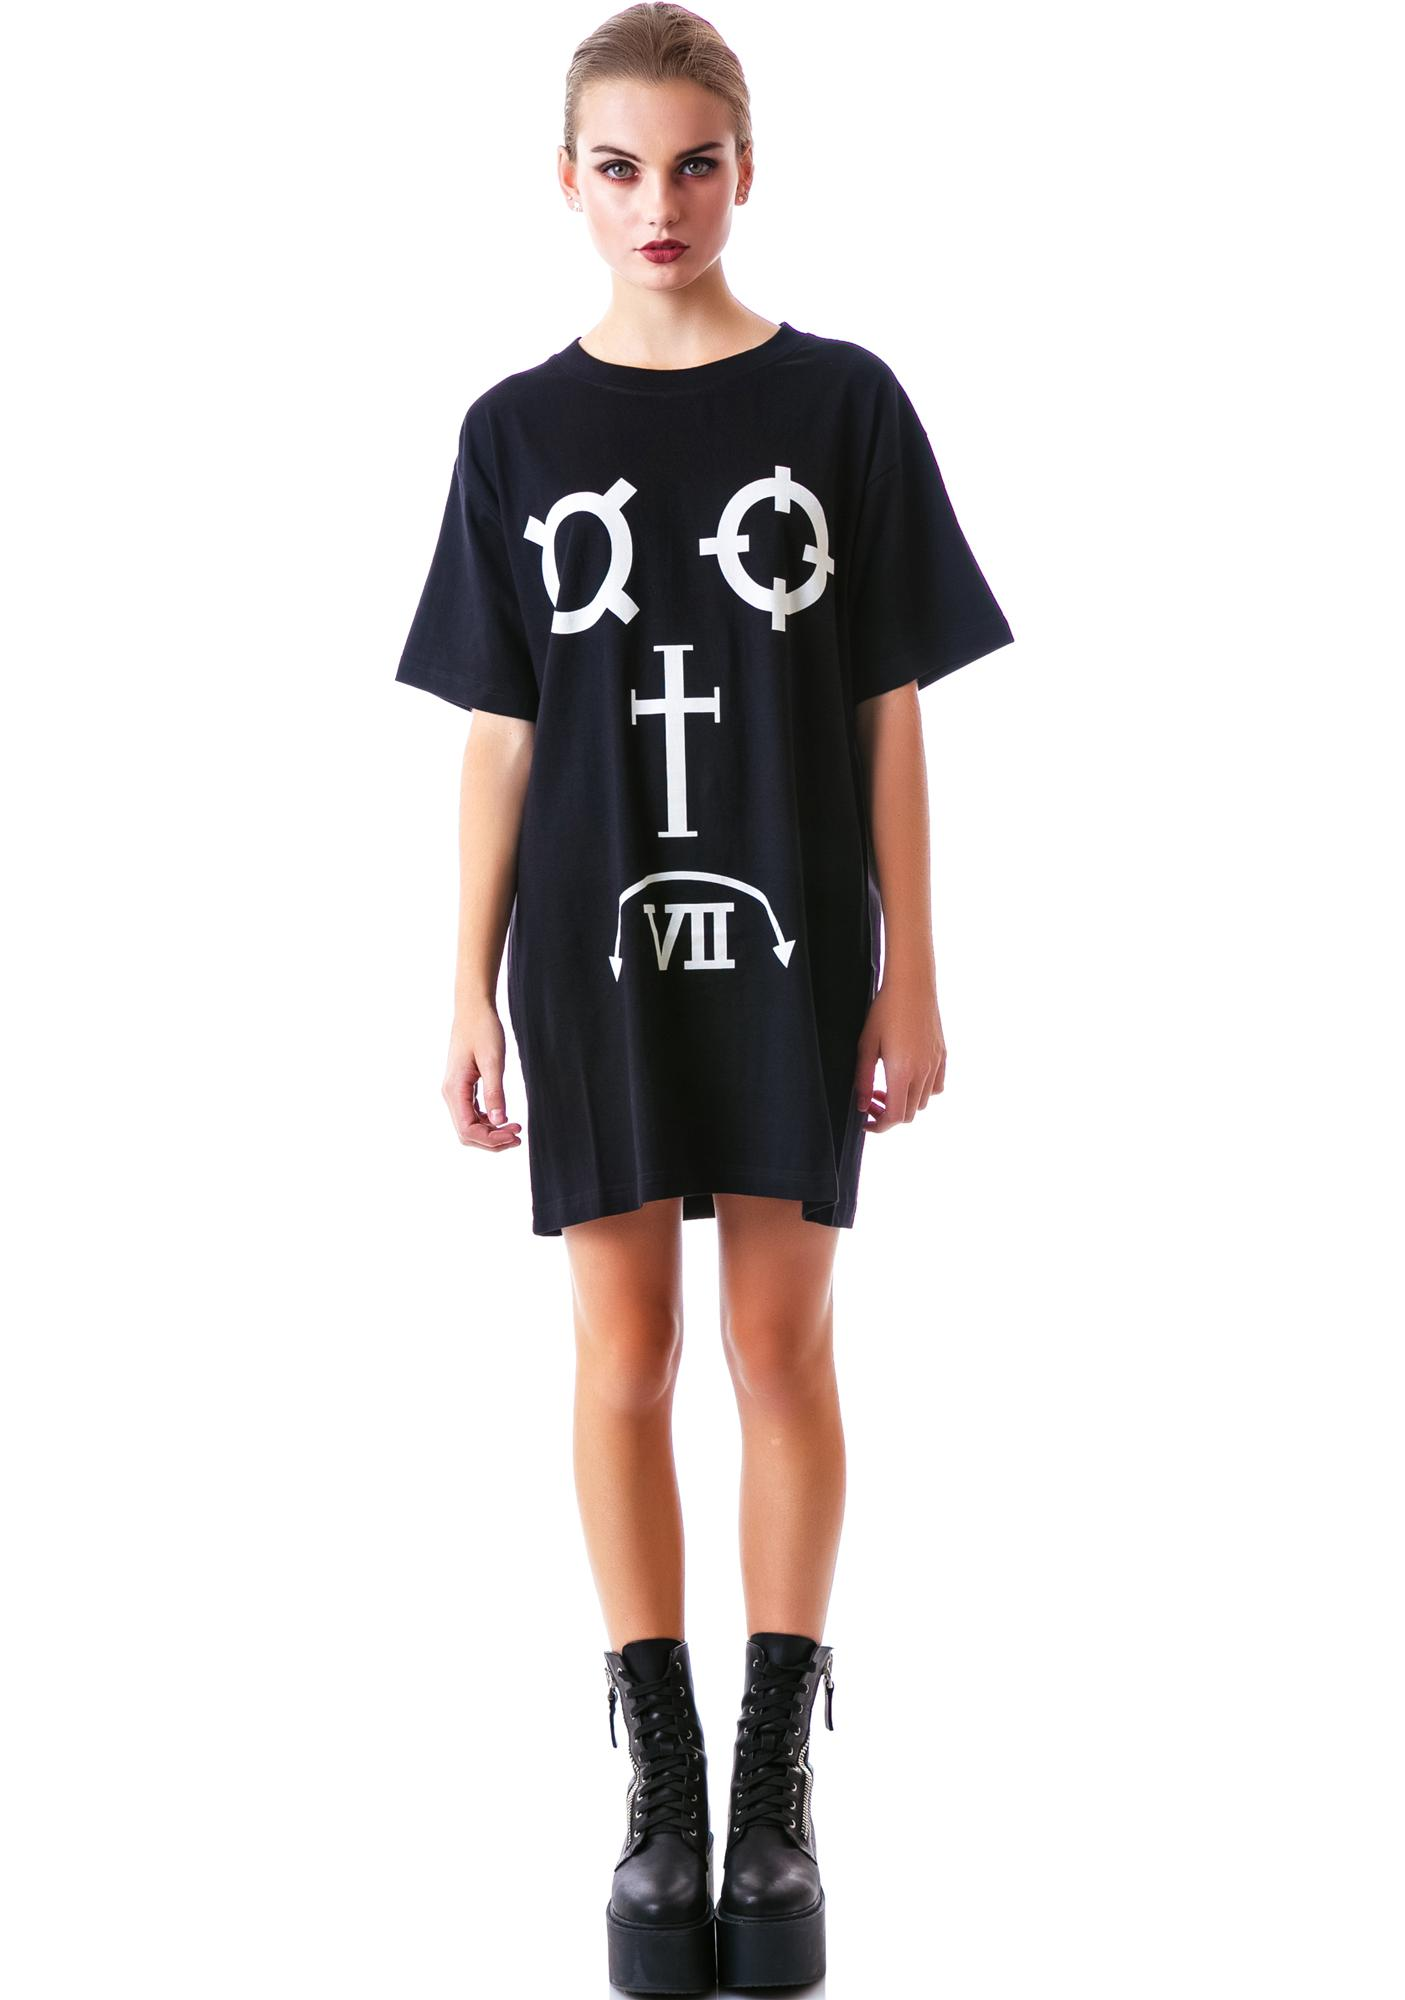 Long Clothing VII Oversized Tee